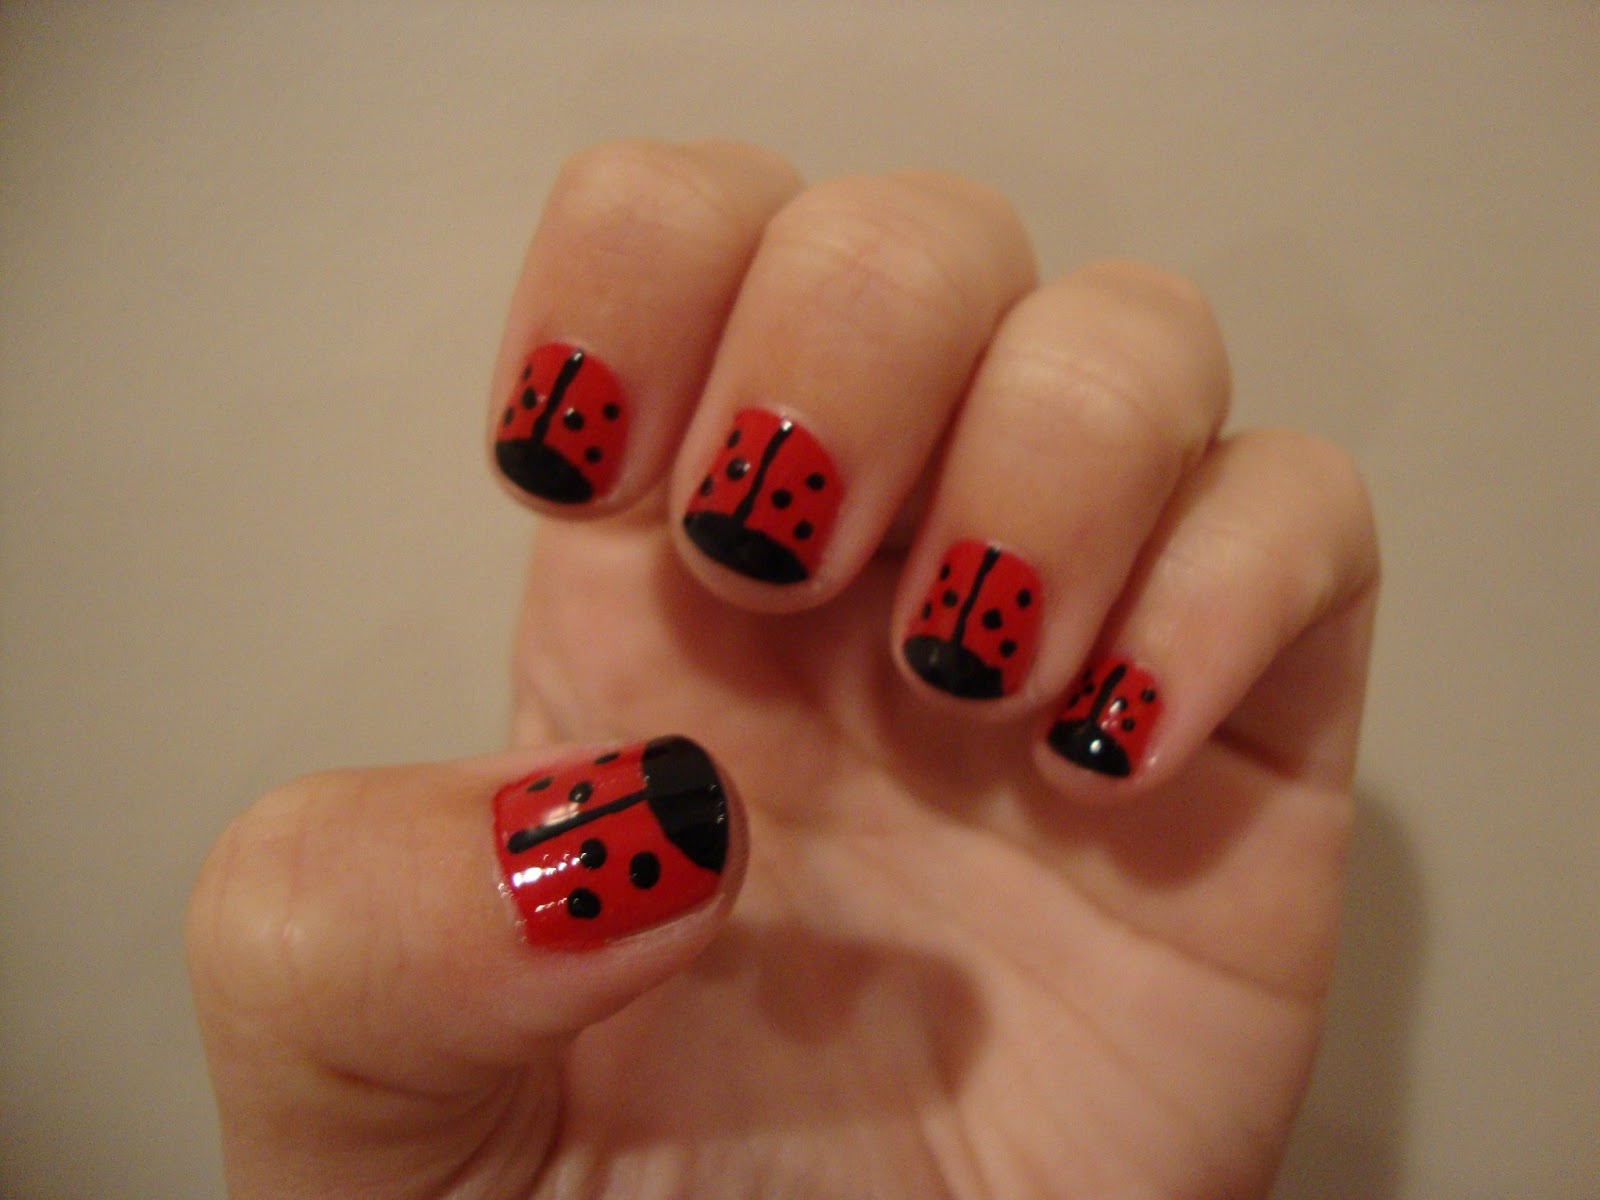 NAILed it.: Lady Bug Nails!